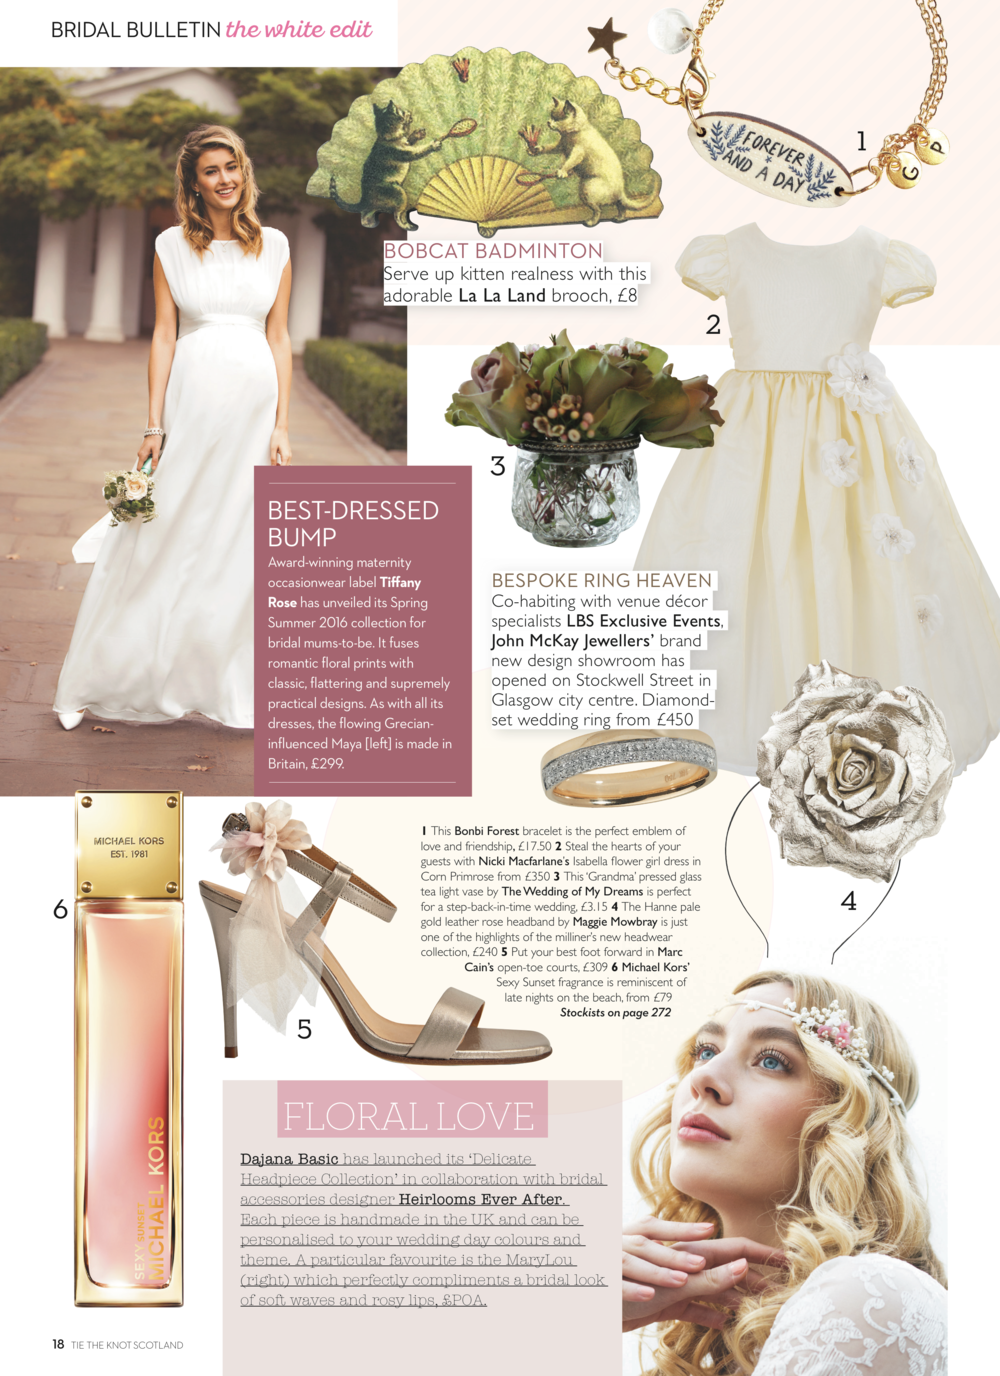 018_Bridal_buzz_44.png